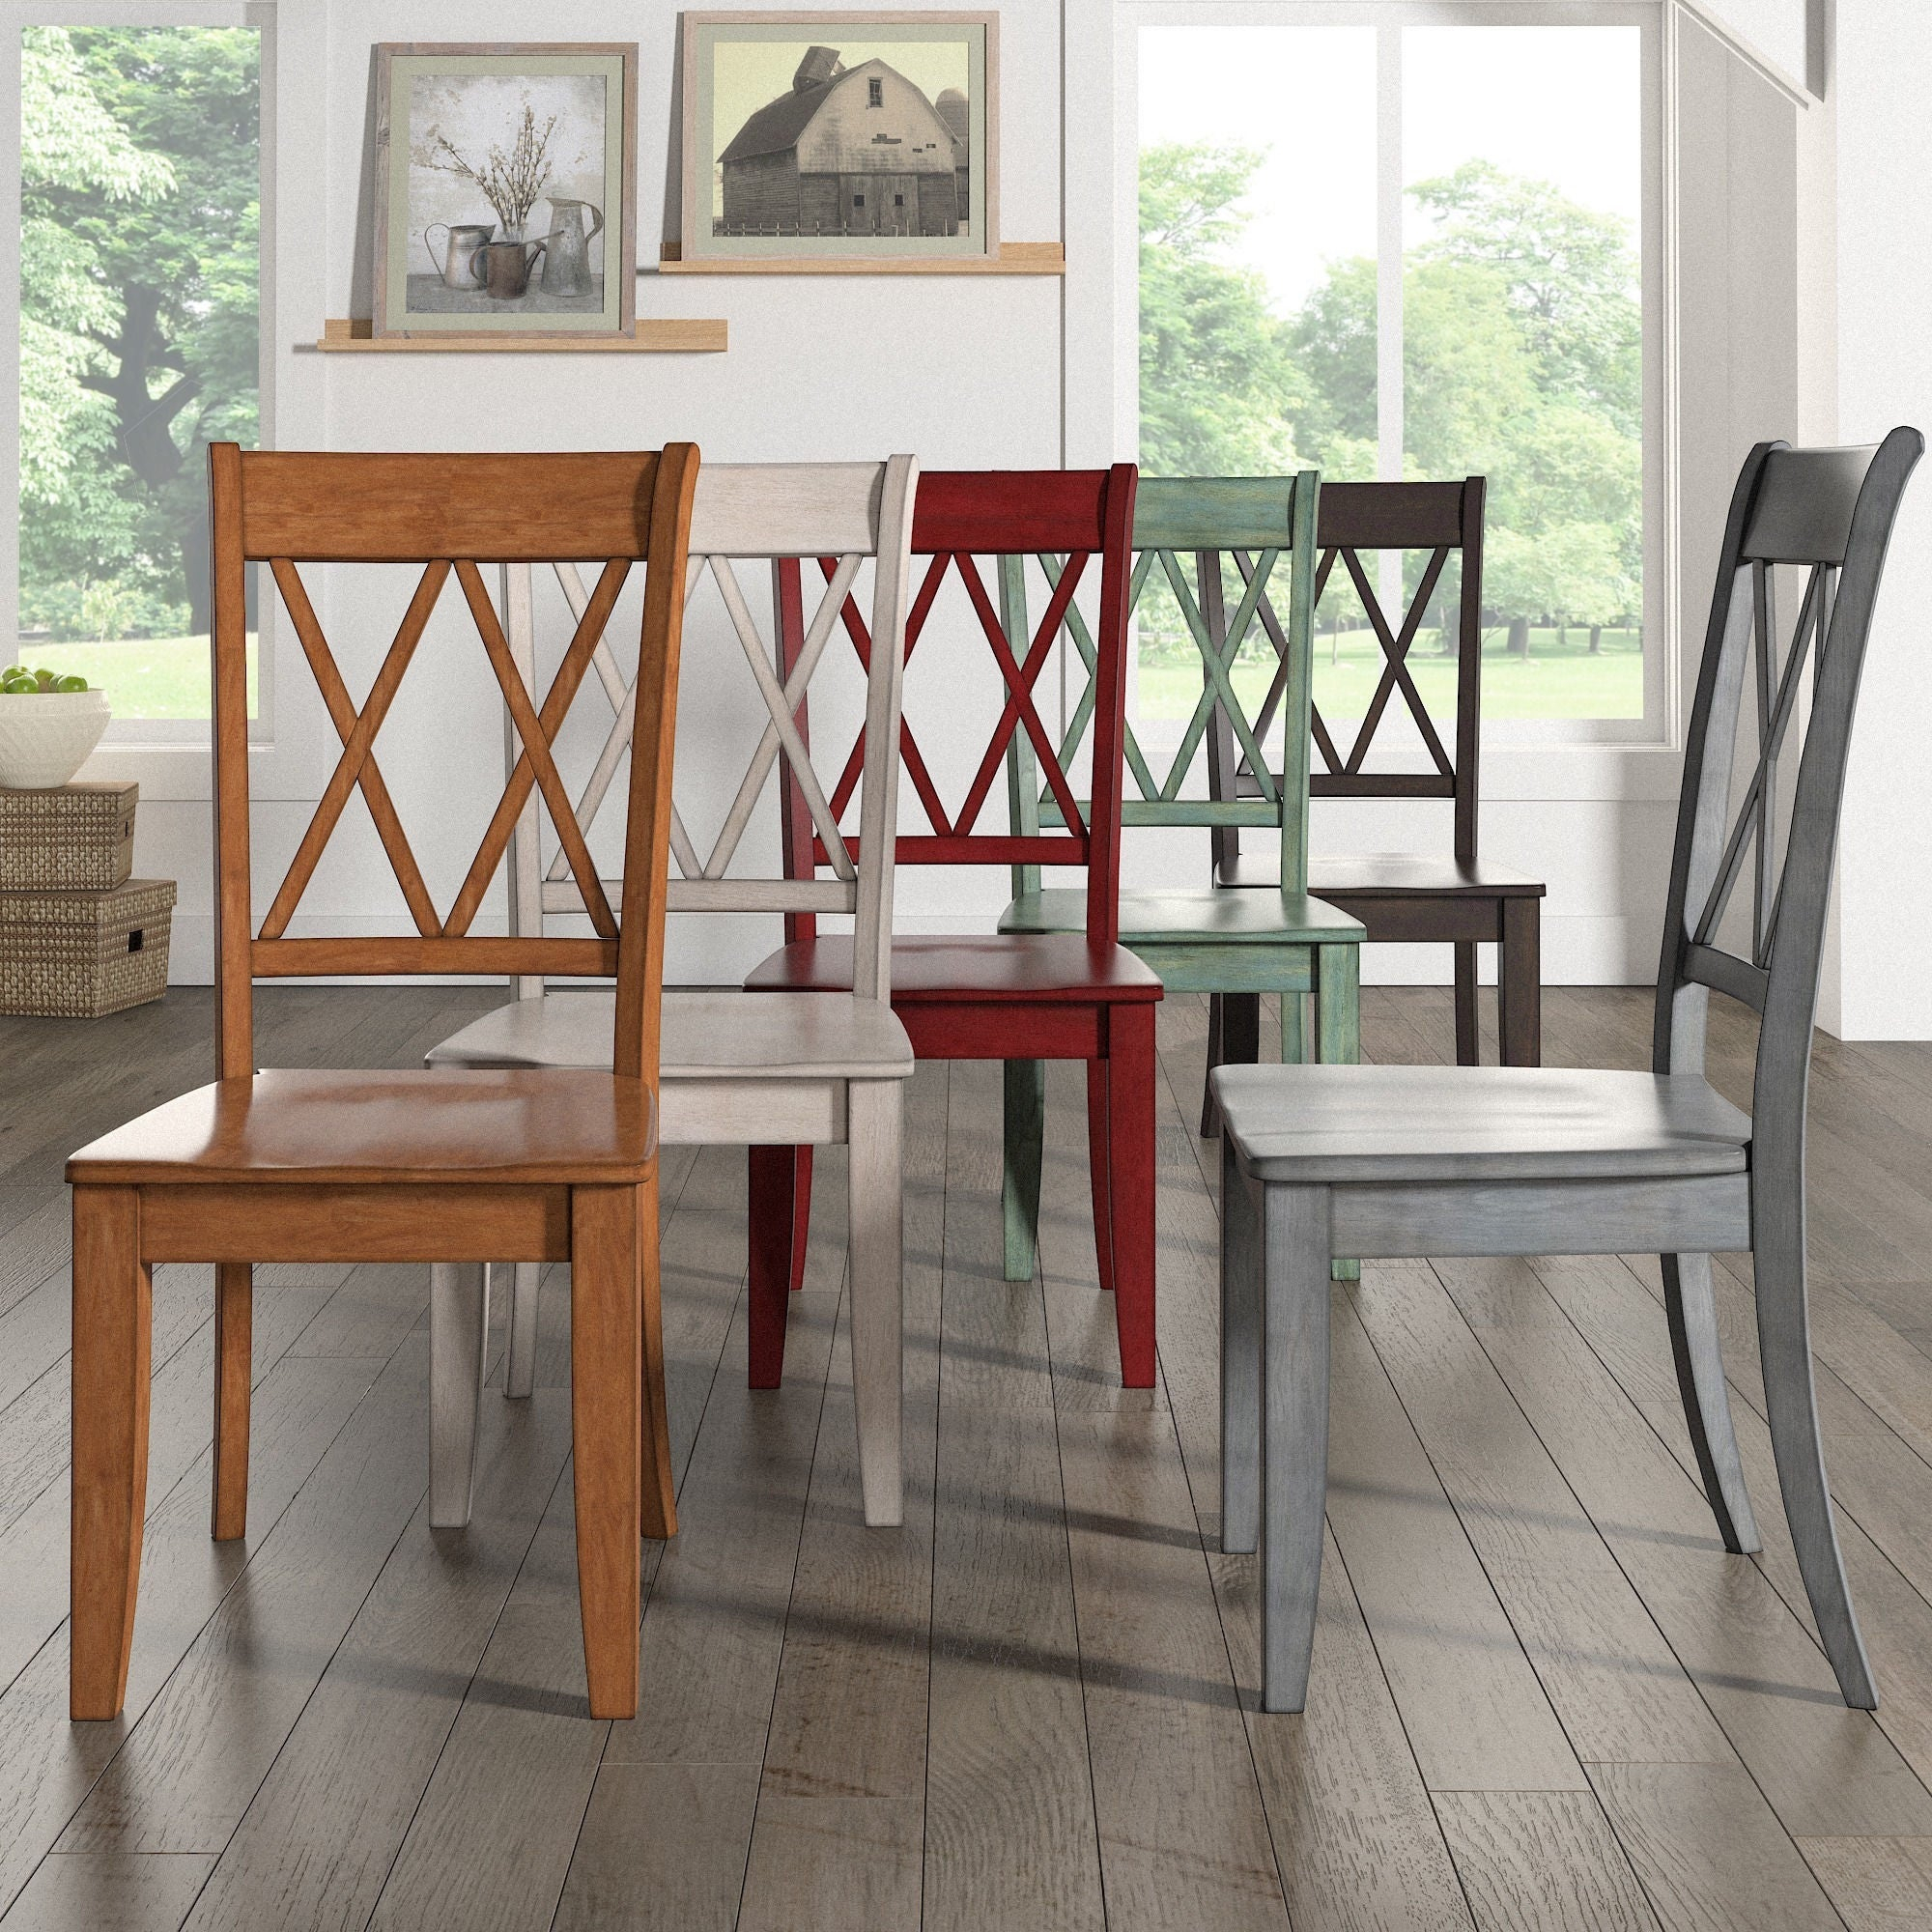 Farmhouse Dining Room & Bar Furniture | Find Great Furniture Deals With Regard To Newest Falmer 3 Piece Solid Wood Dining Sets (View 13 of 20)